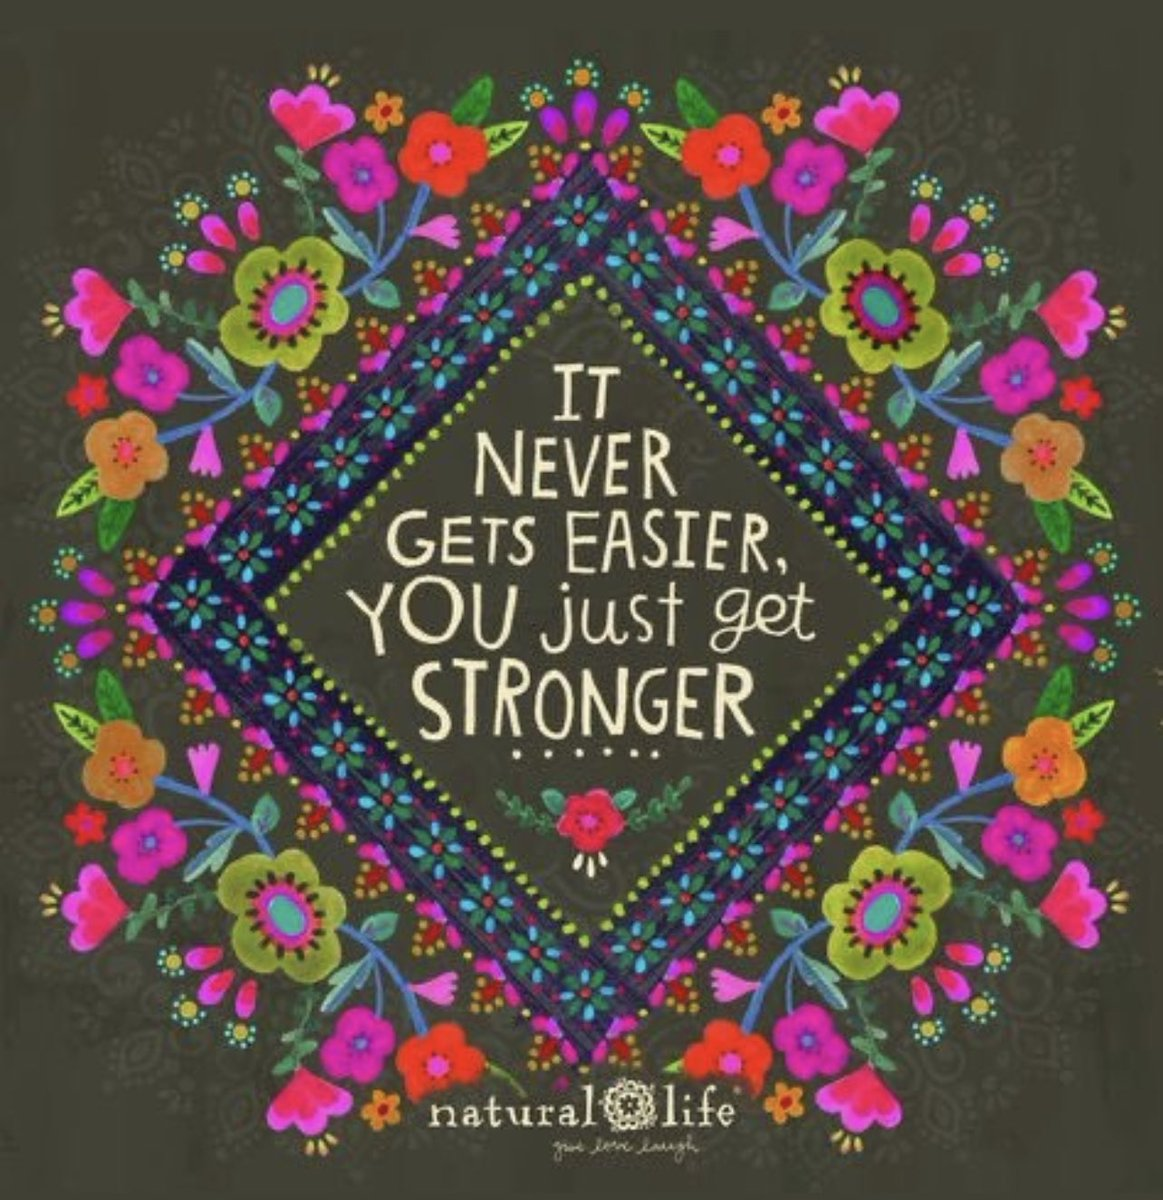 #FridayMotivation Whatever your experiencing right now is making you stronger. Embrace it, work thu it, & you will definitely come out of it STRONGER because of it!💚💕💚#StrongerTogether #ALLmeansALL #PROUDtobeGUSD #NeverGiveUp #sisterCircle @RosaIsiah @pgilders @mrsjessgomez